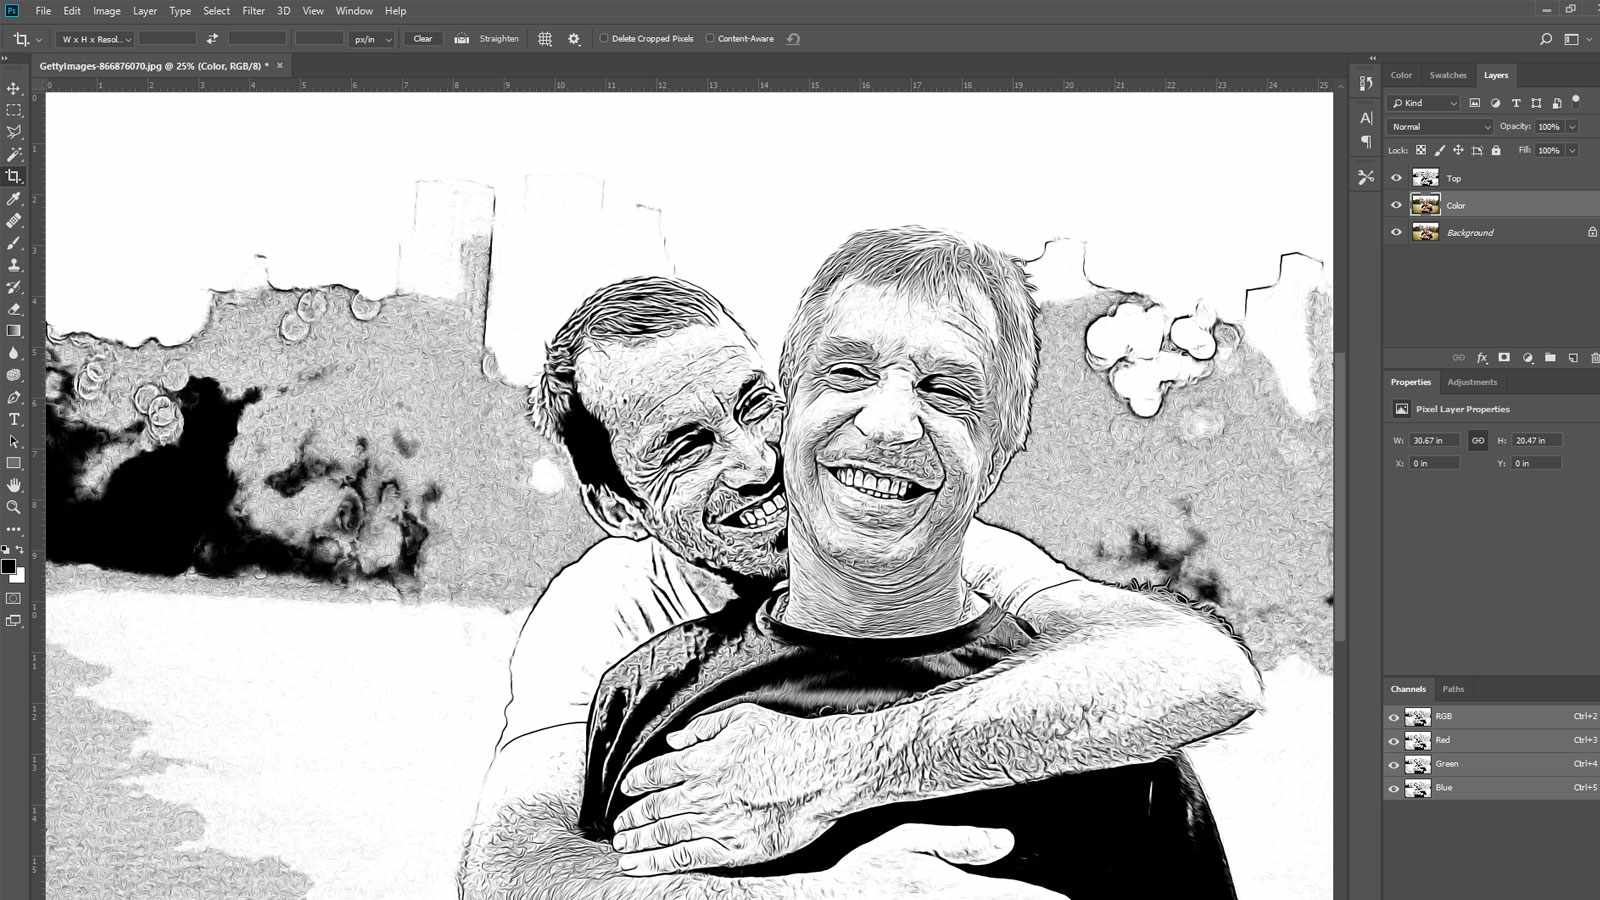 How to Use the Photoshop Cartoon Effect